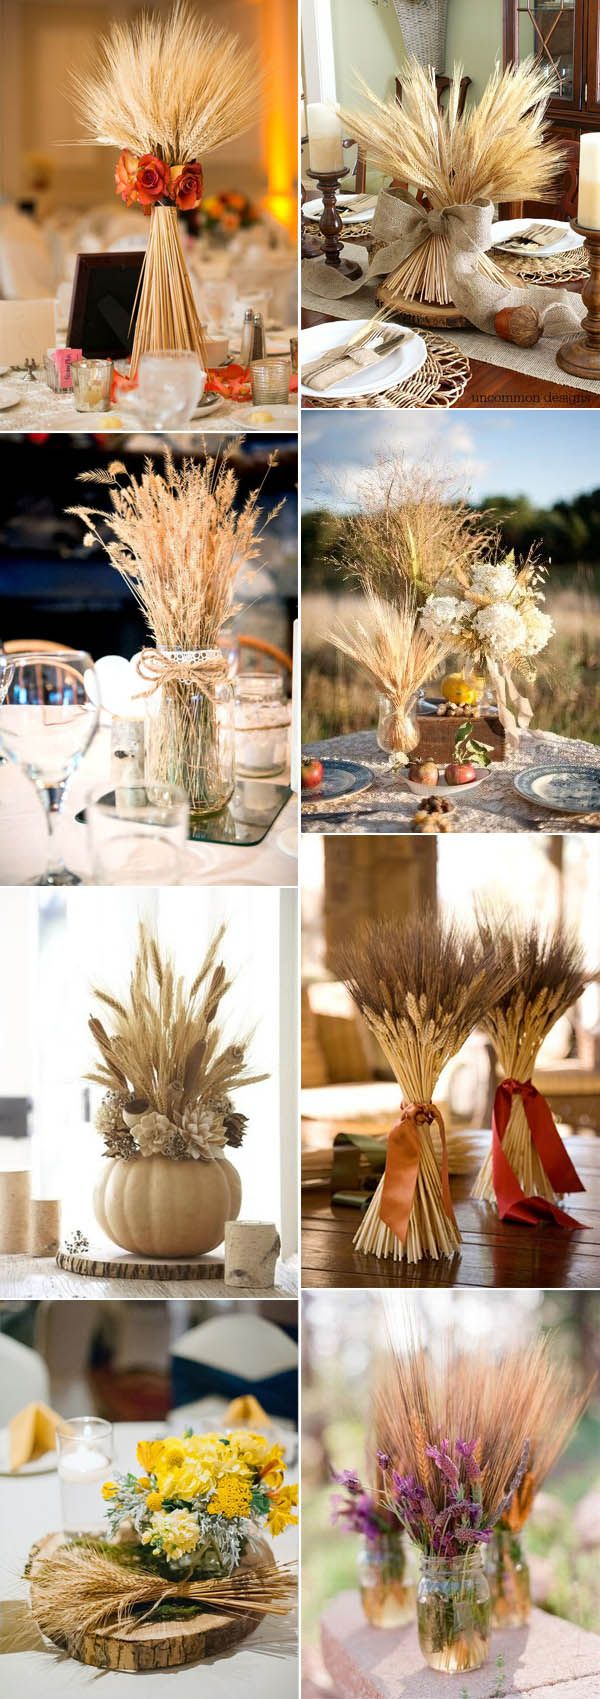 rustic wheat autumn wedding centerpieces inspiration                                                                                                                                                                                 More